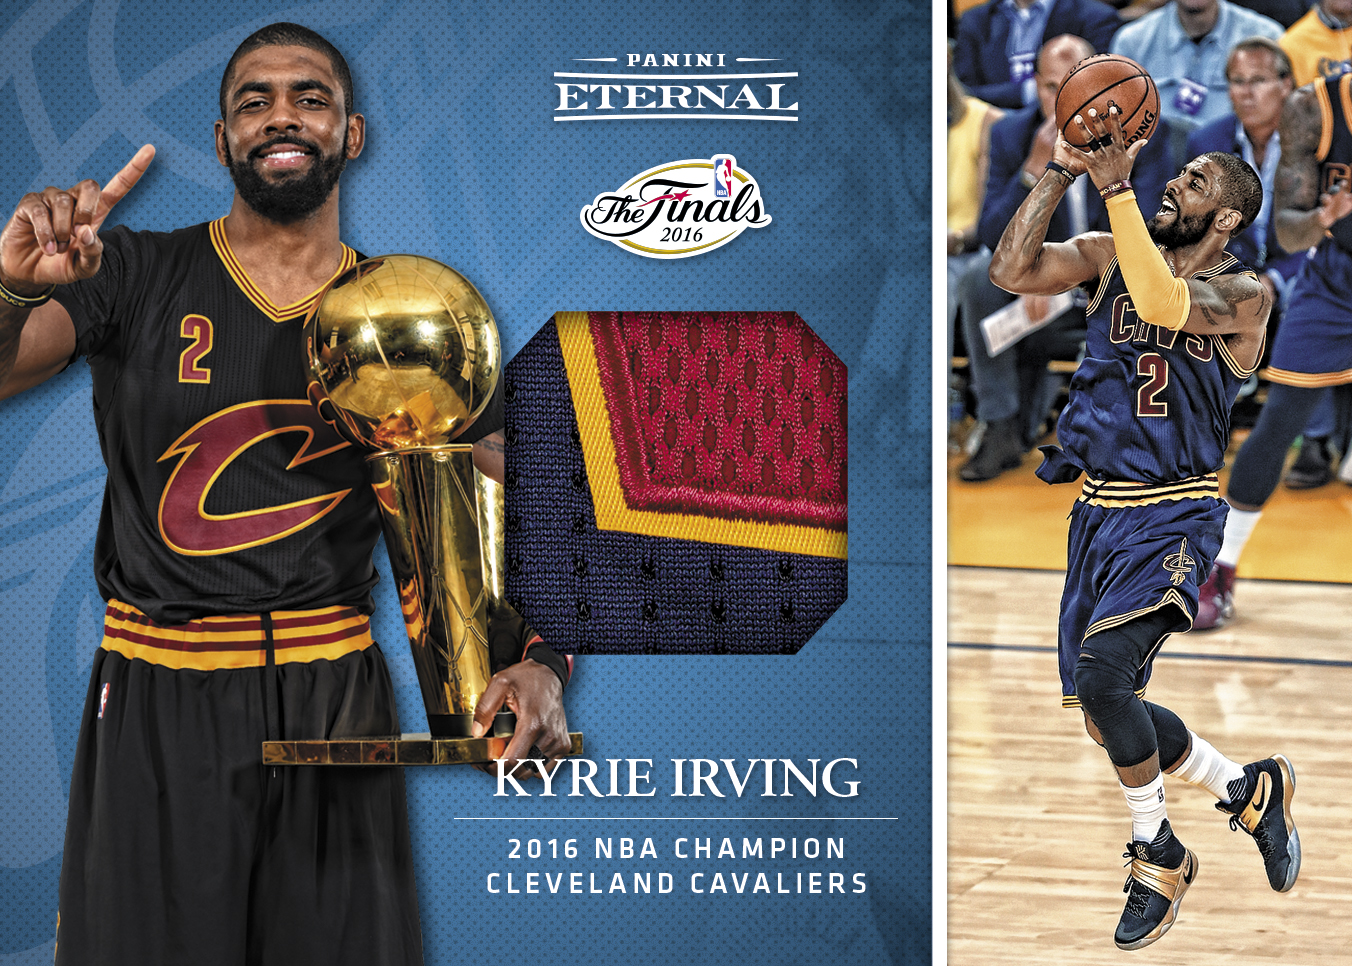 on sale 351ad e69f6 Kyrie Irving Finals Jersey - 2016 Panini Eternal Memorabilia ...